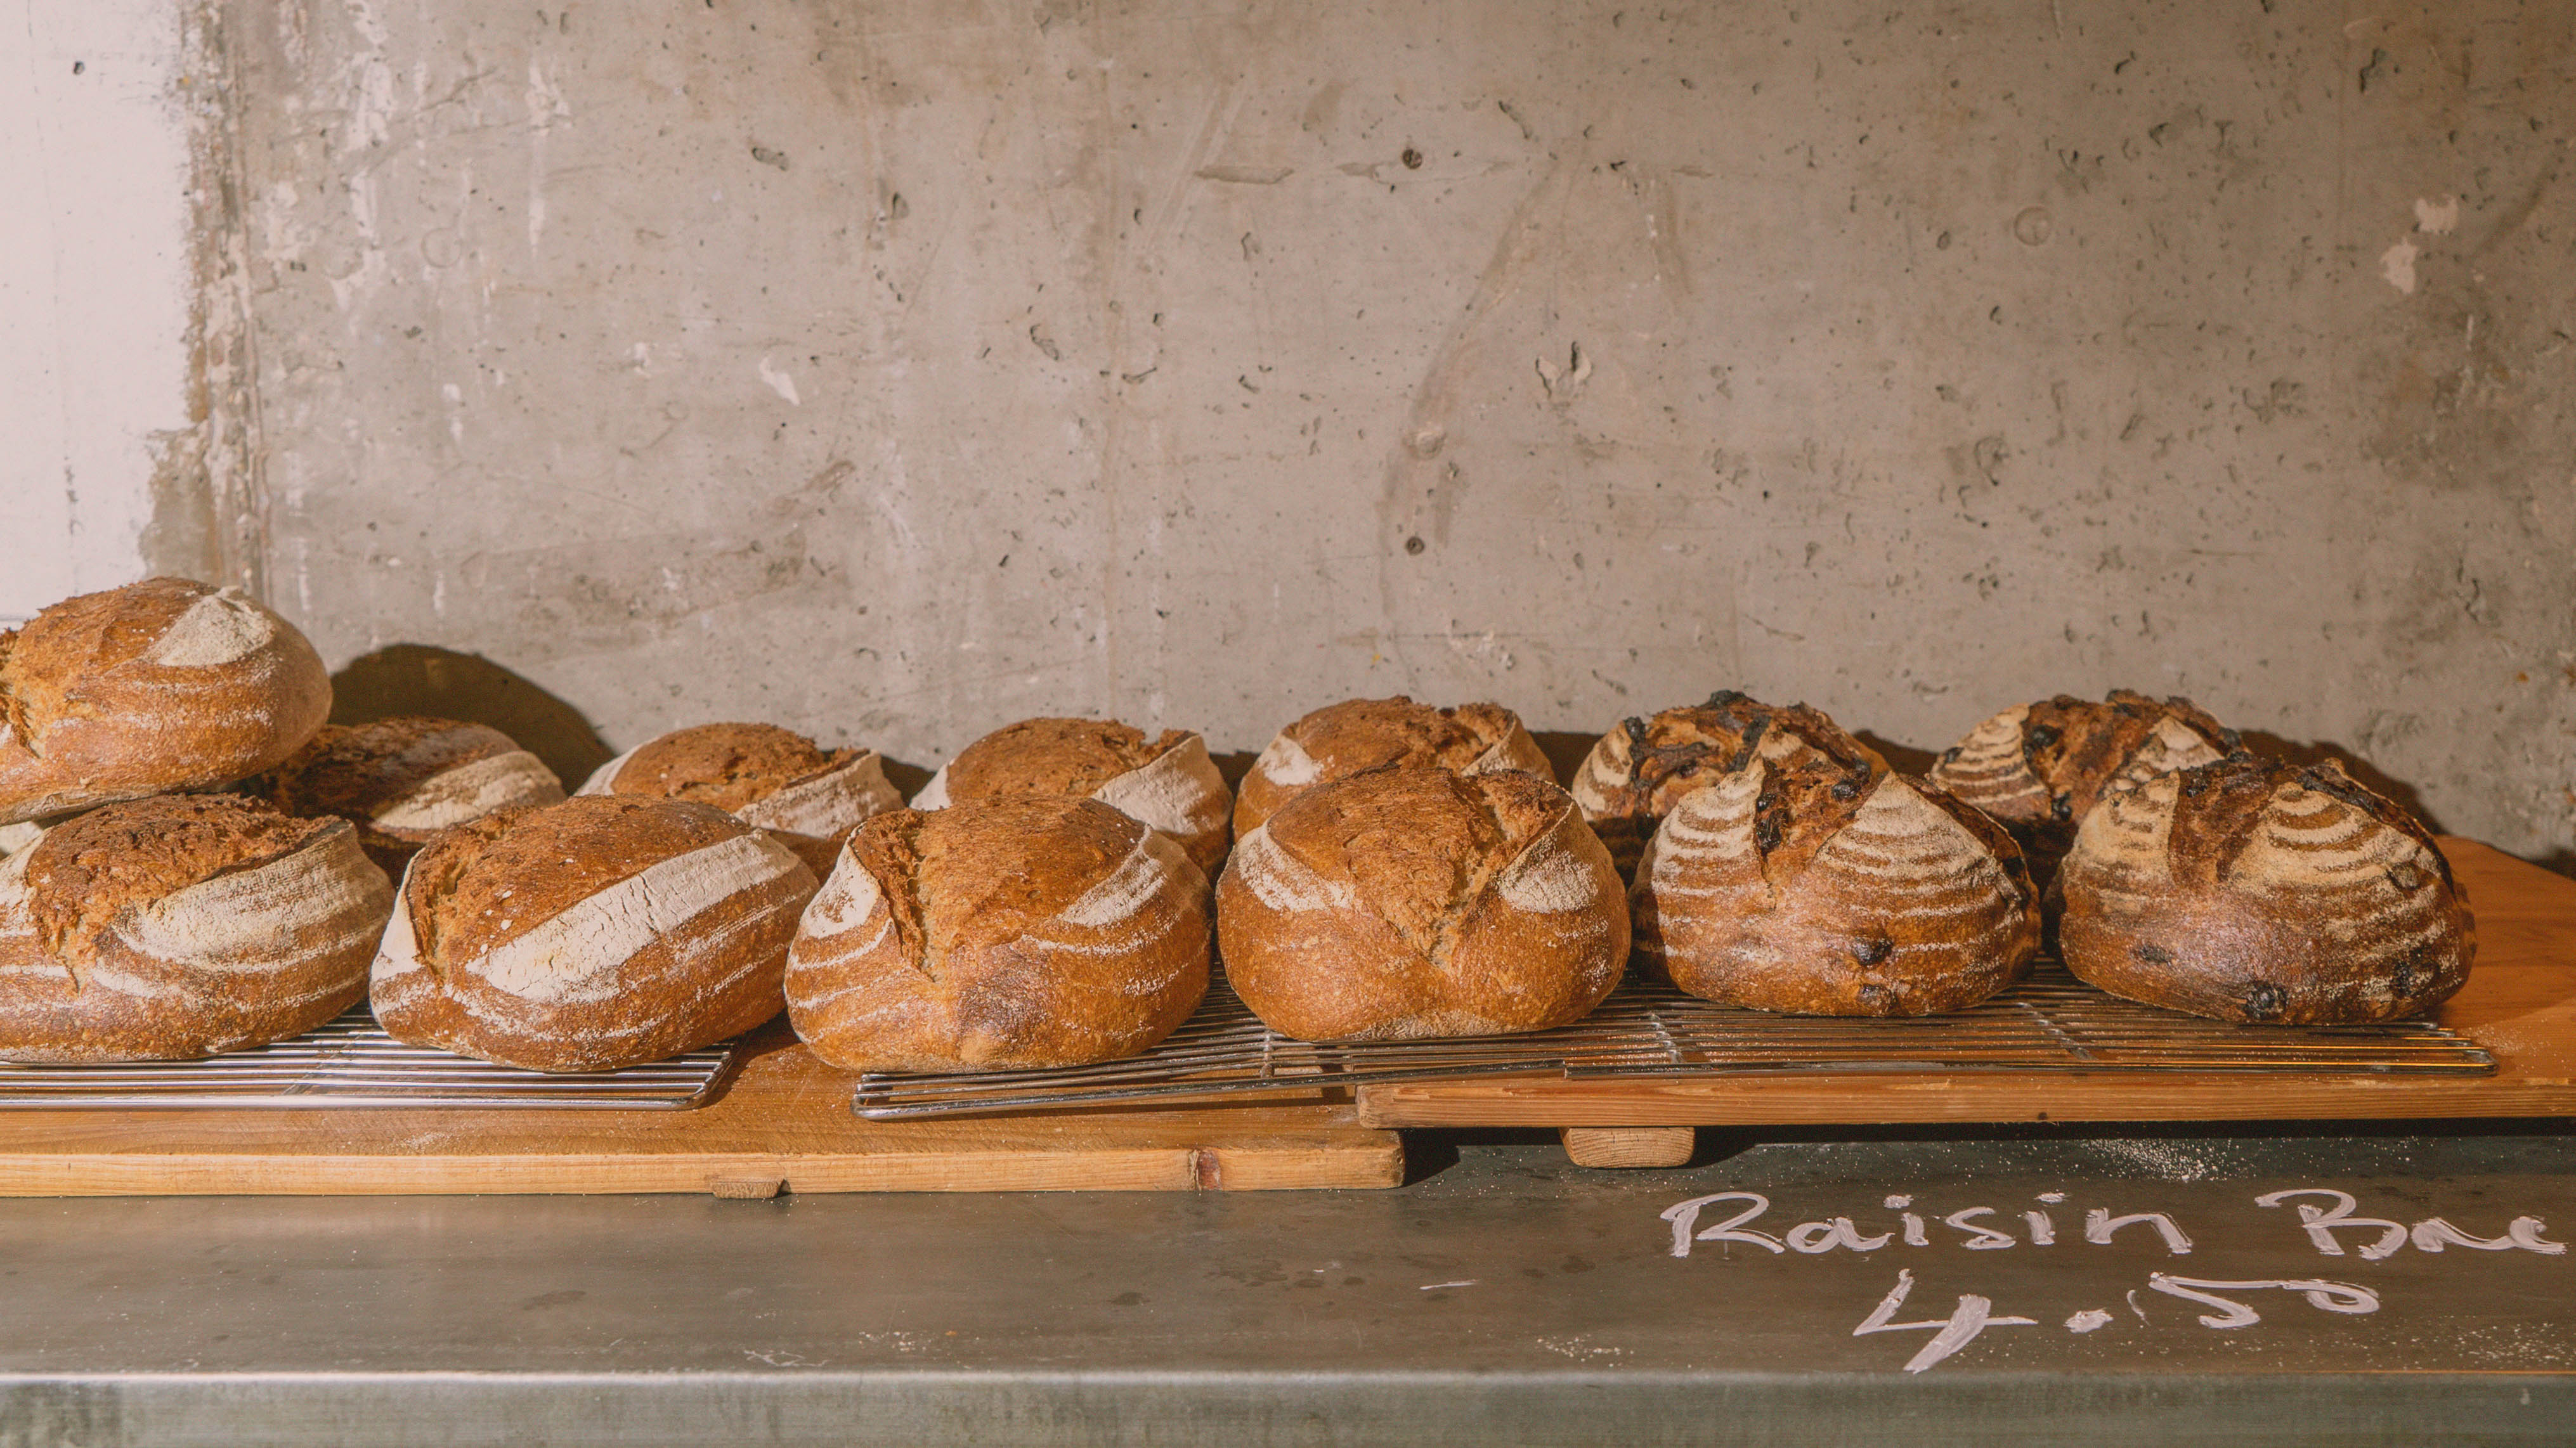 London restaurants in 2019 will feature more bread and wine, like this at Jolene bakery, restaurant and wine bar in Newington Green